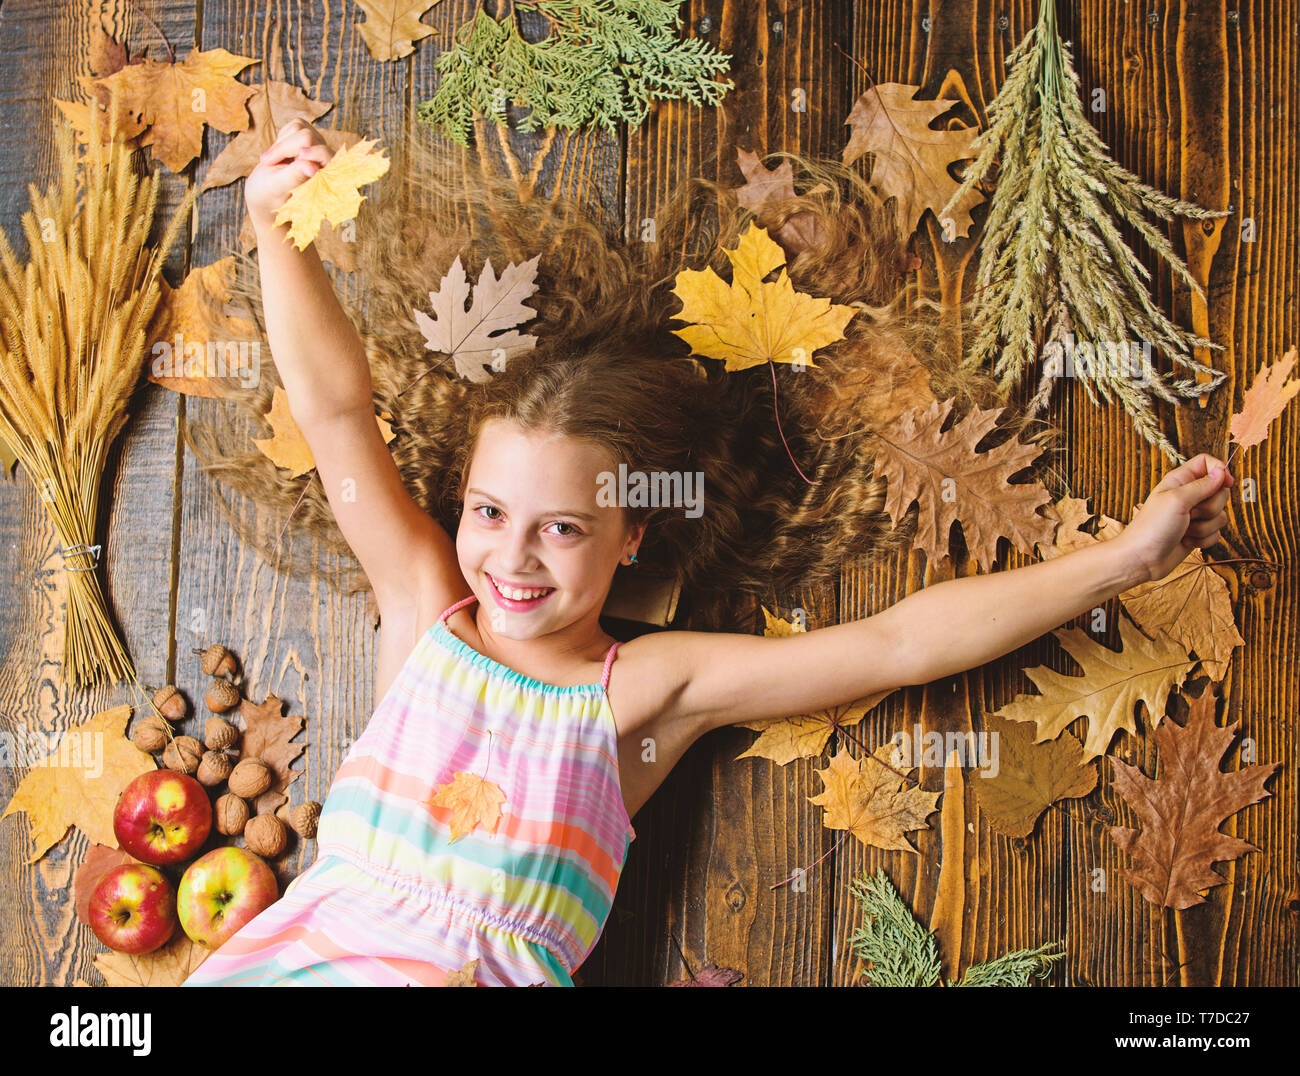 Kid girl smiling face relax wooden background autumn attributes top view child with long hair with autumn maple leaves tips for turning autumn into best